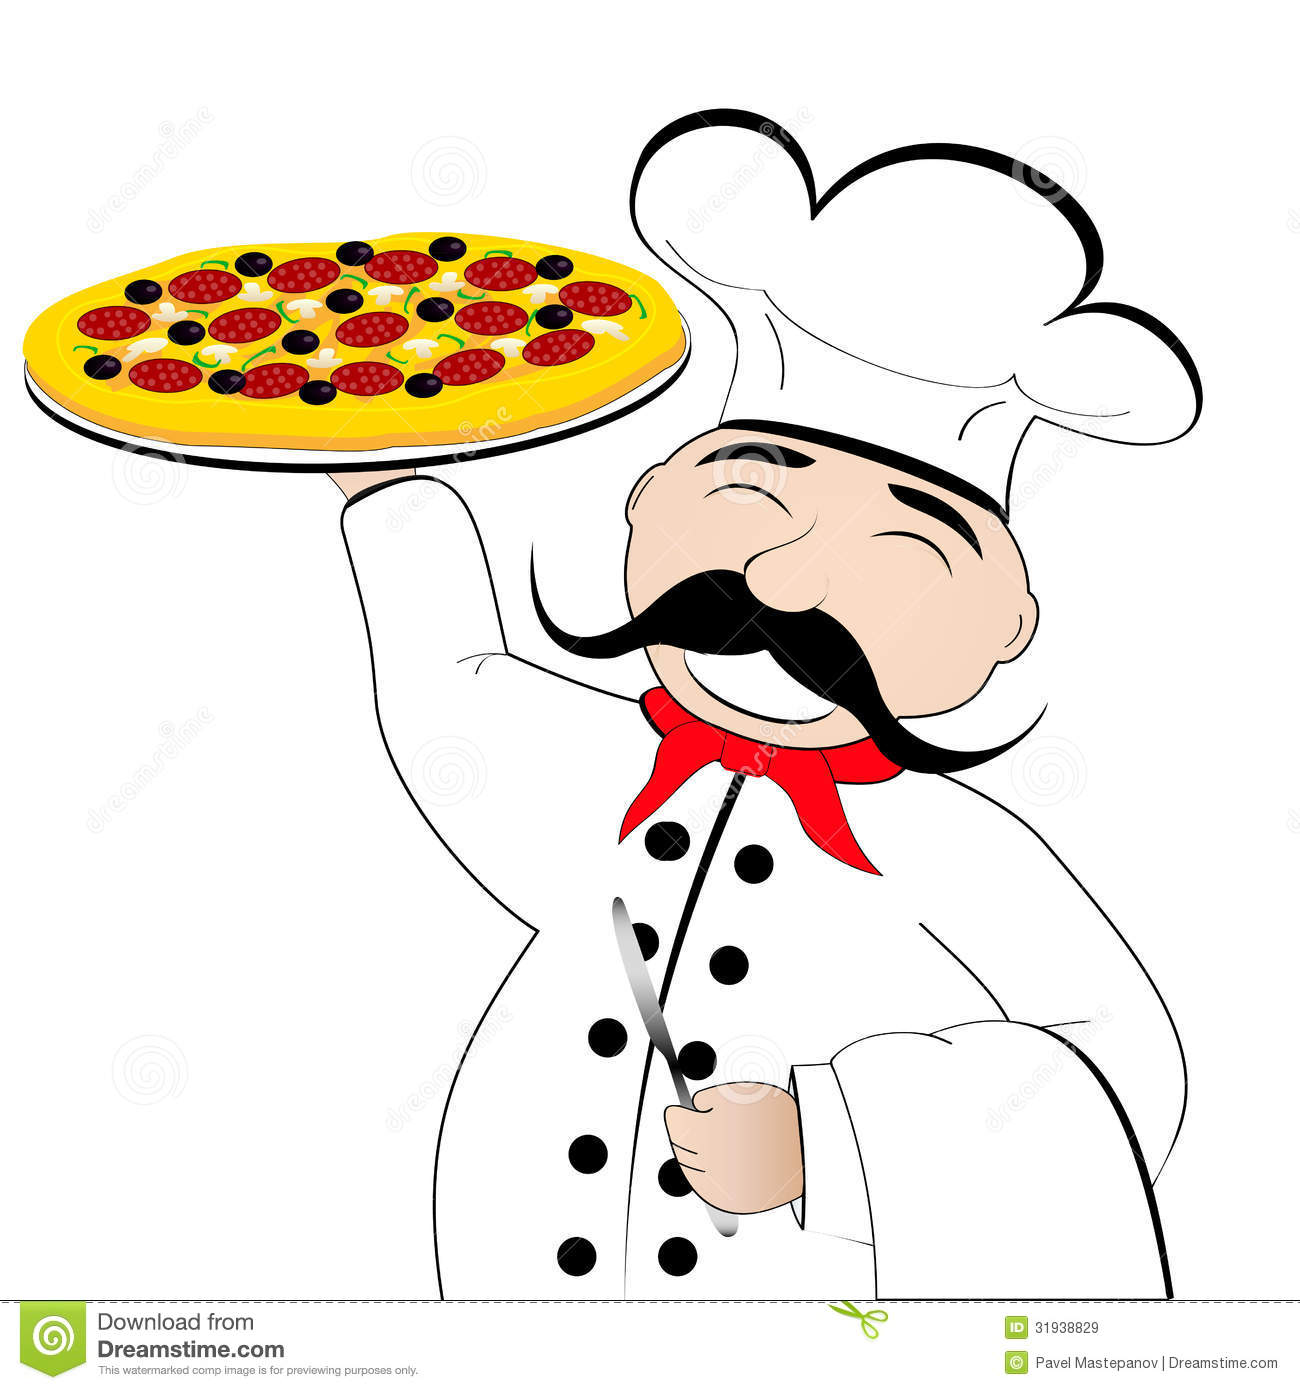 Pizza chef clipart vector royalty free stock Pizza Chef Clipart - Clipart Kid vector royalty free stock